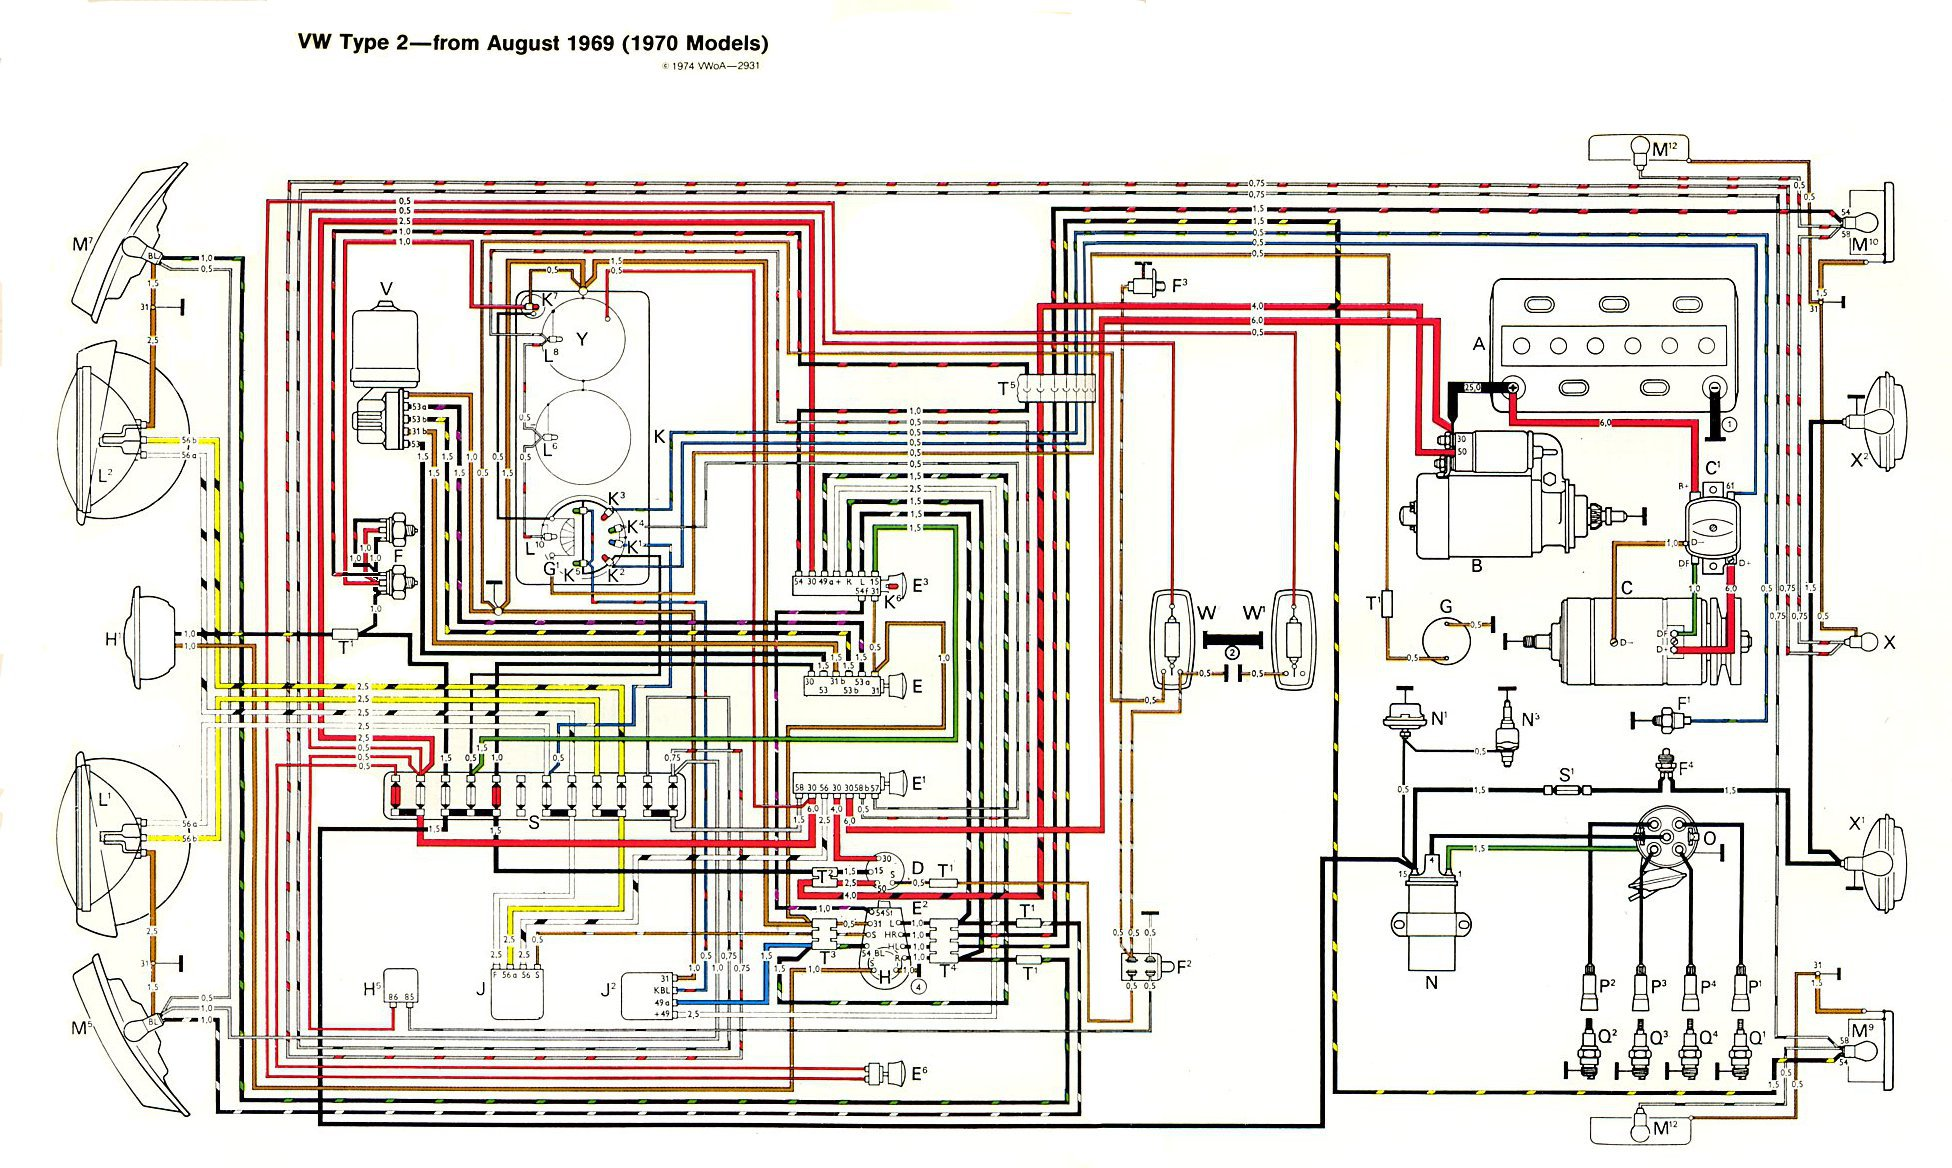 TheSamba.com :: Type 2 Wiring Diagrams on dodge ram wiring diagram, starter relay diagram, starter capacitor diagram, c3 corvette wiring diagram, starter check, starter switch diagram, 2003 ford focus wiring diagram, starter components diagram, starter motor diagram, starter parts diagram, starter system diagram, starter fuse, automotive starter diagram, starter wiring, hand off auto wiring diagram, starter connection diagram, starter assembly diagram,